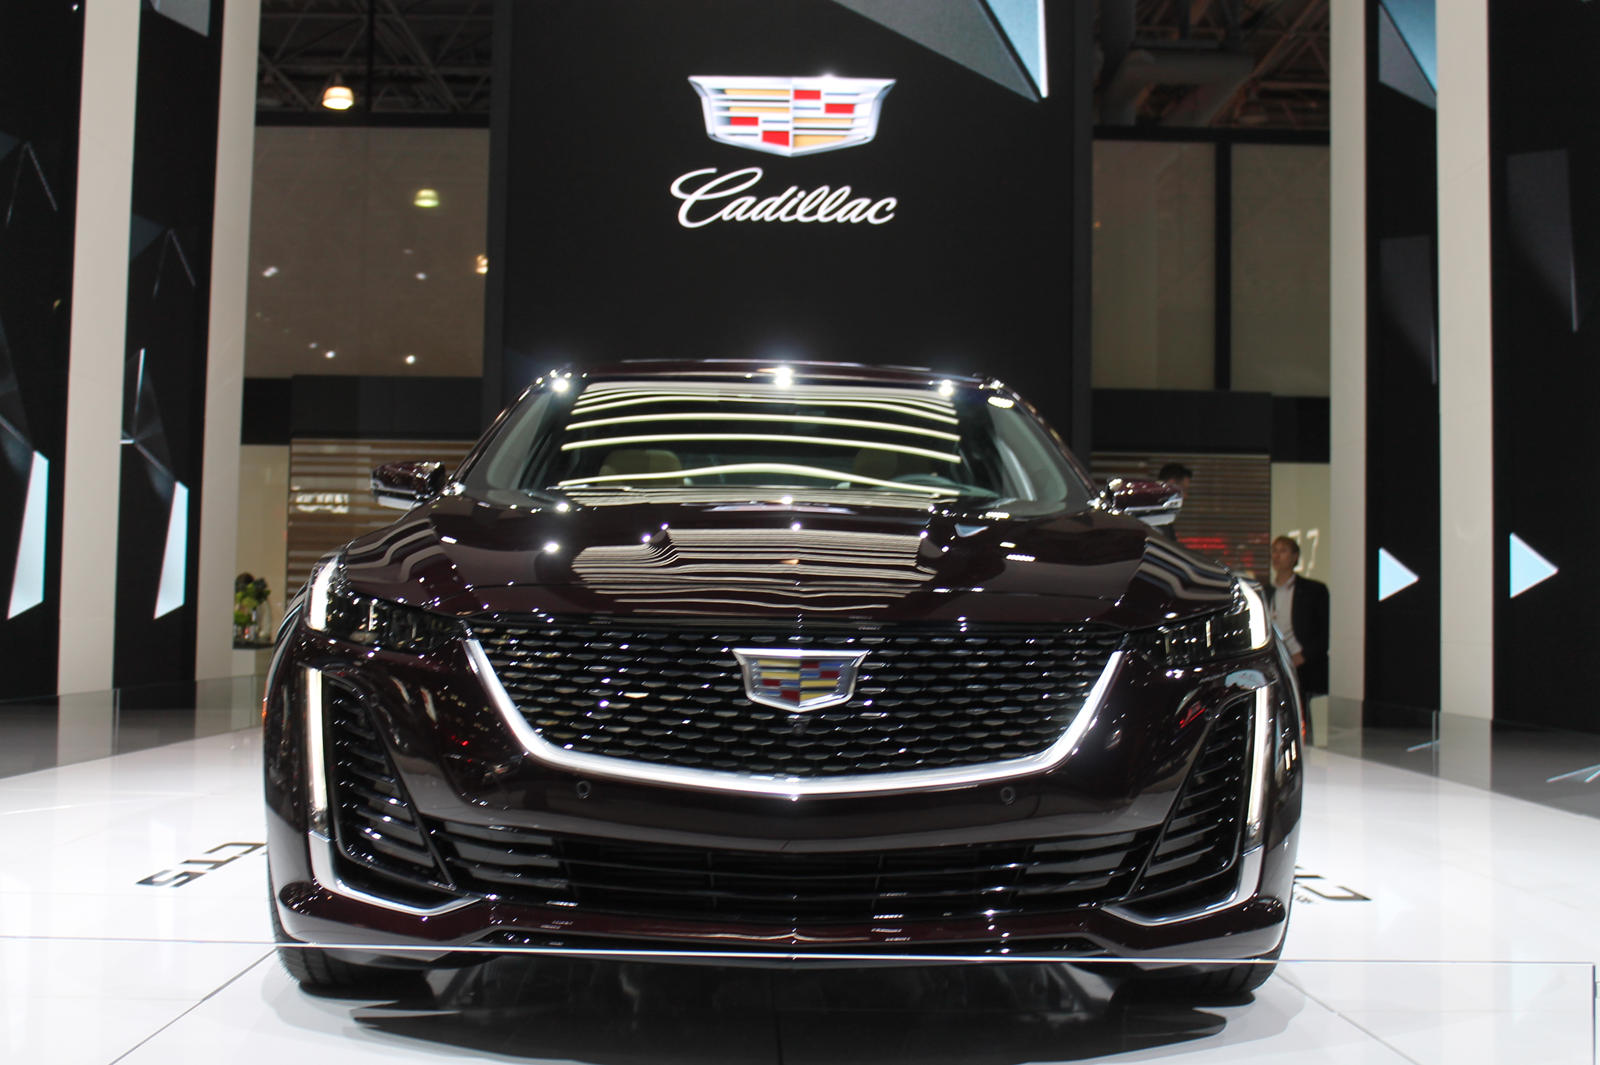 2020 Cadillac Ct5 Arrives Like A Boss In New York City